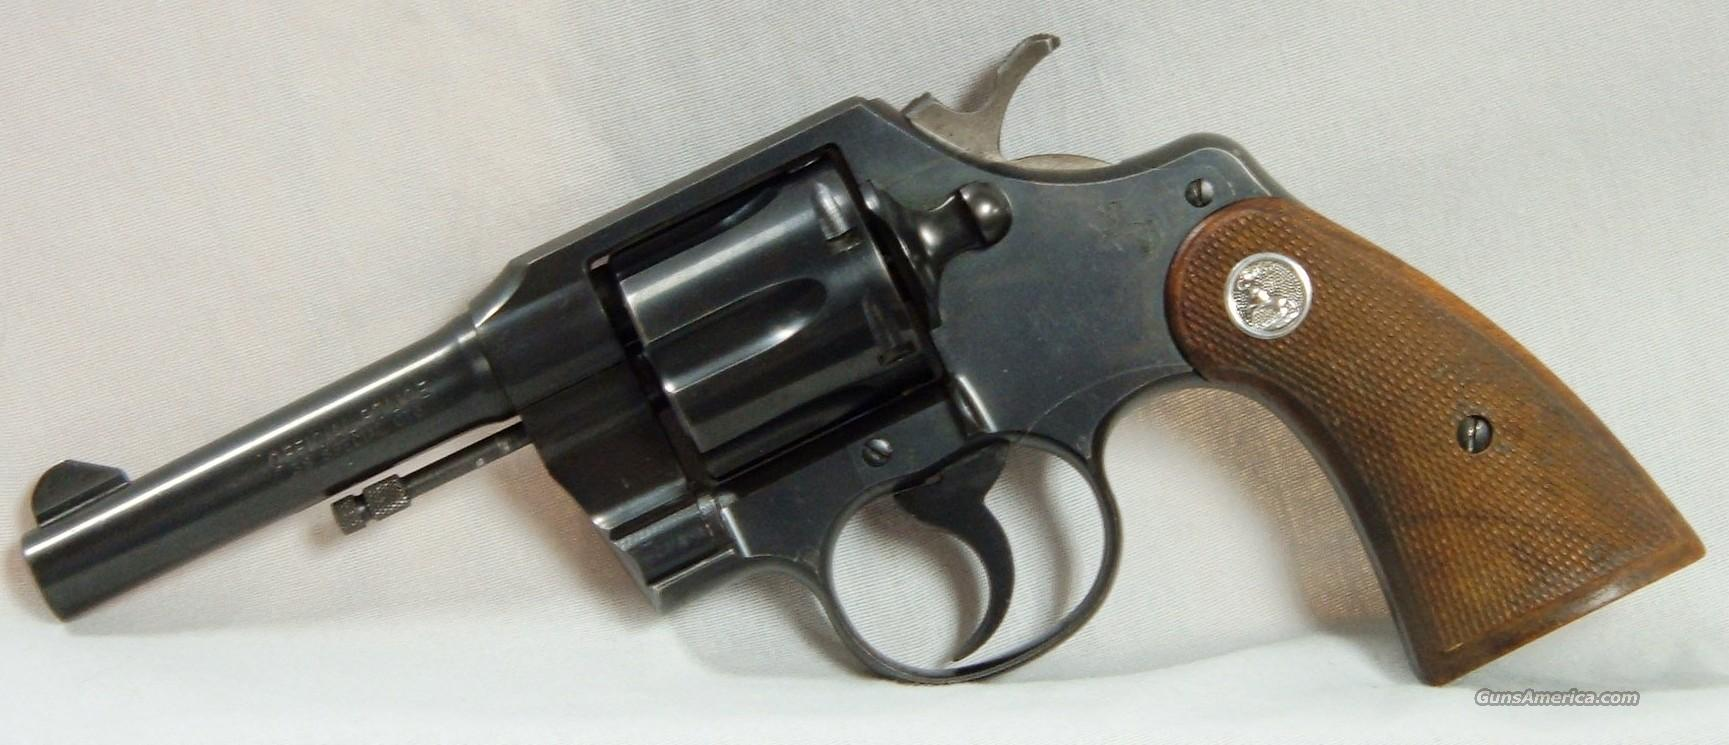 Colt Offical Police  Guns > Pistols > Colt Double Action Revolvers- Modern